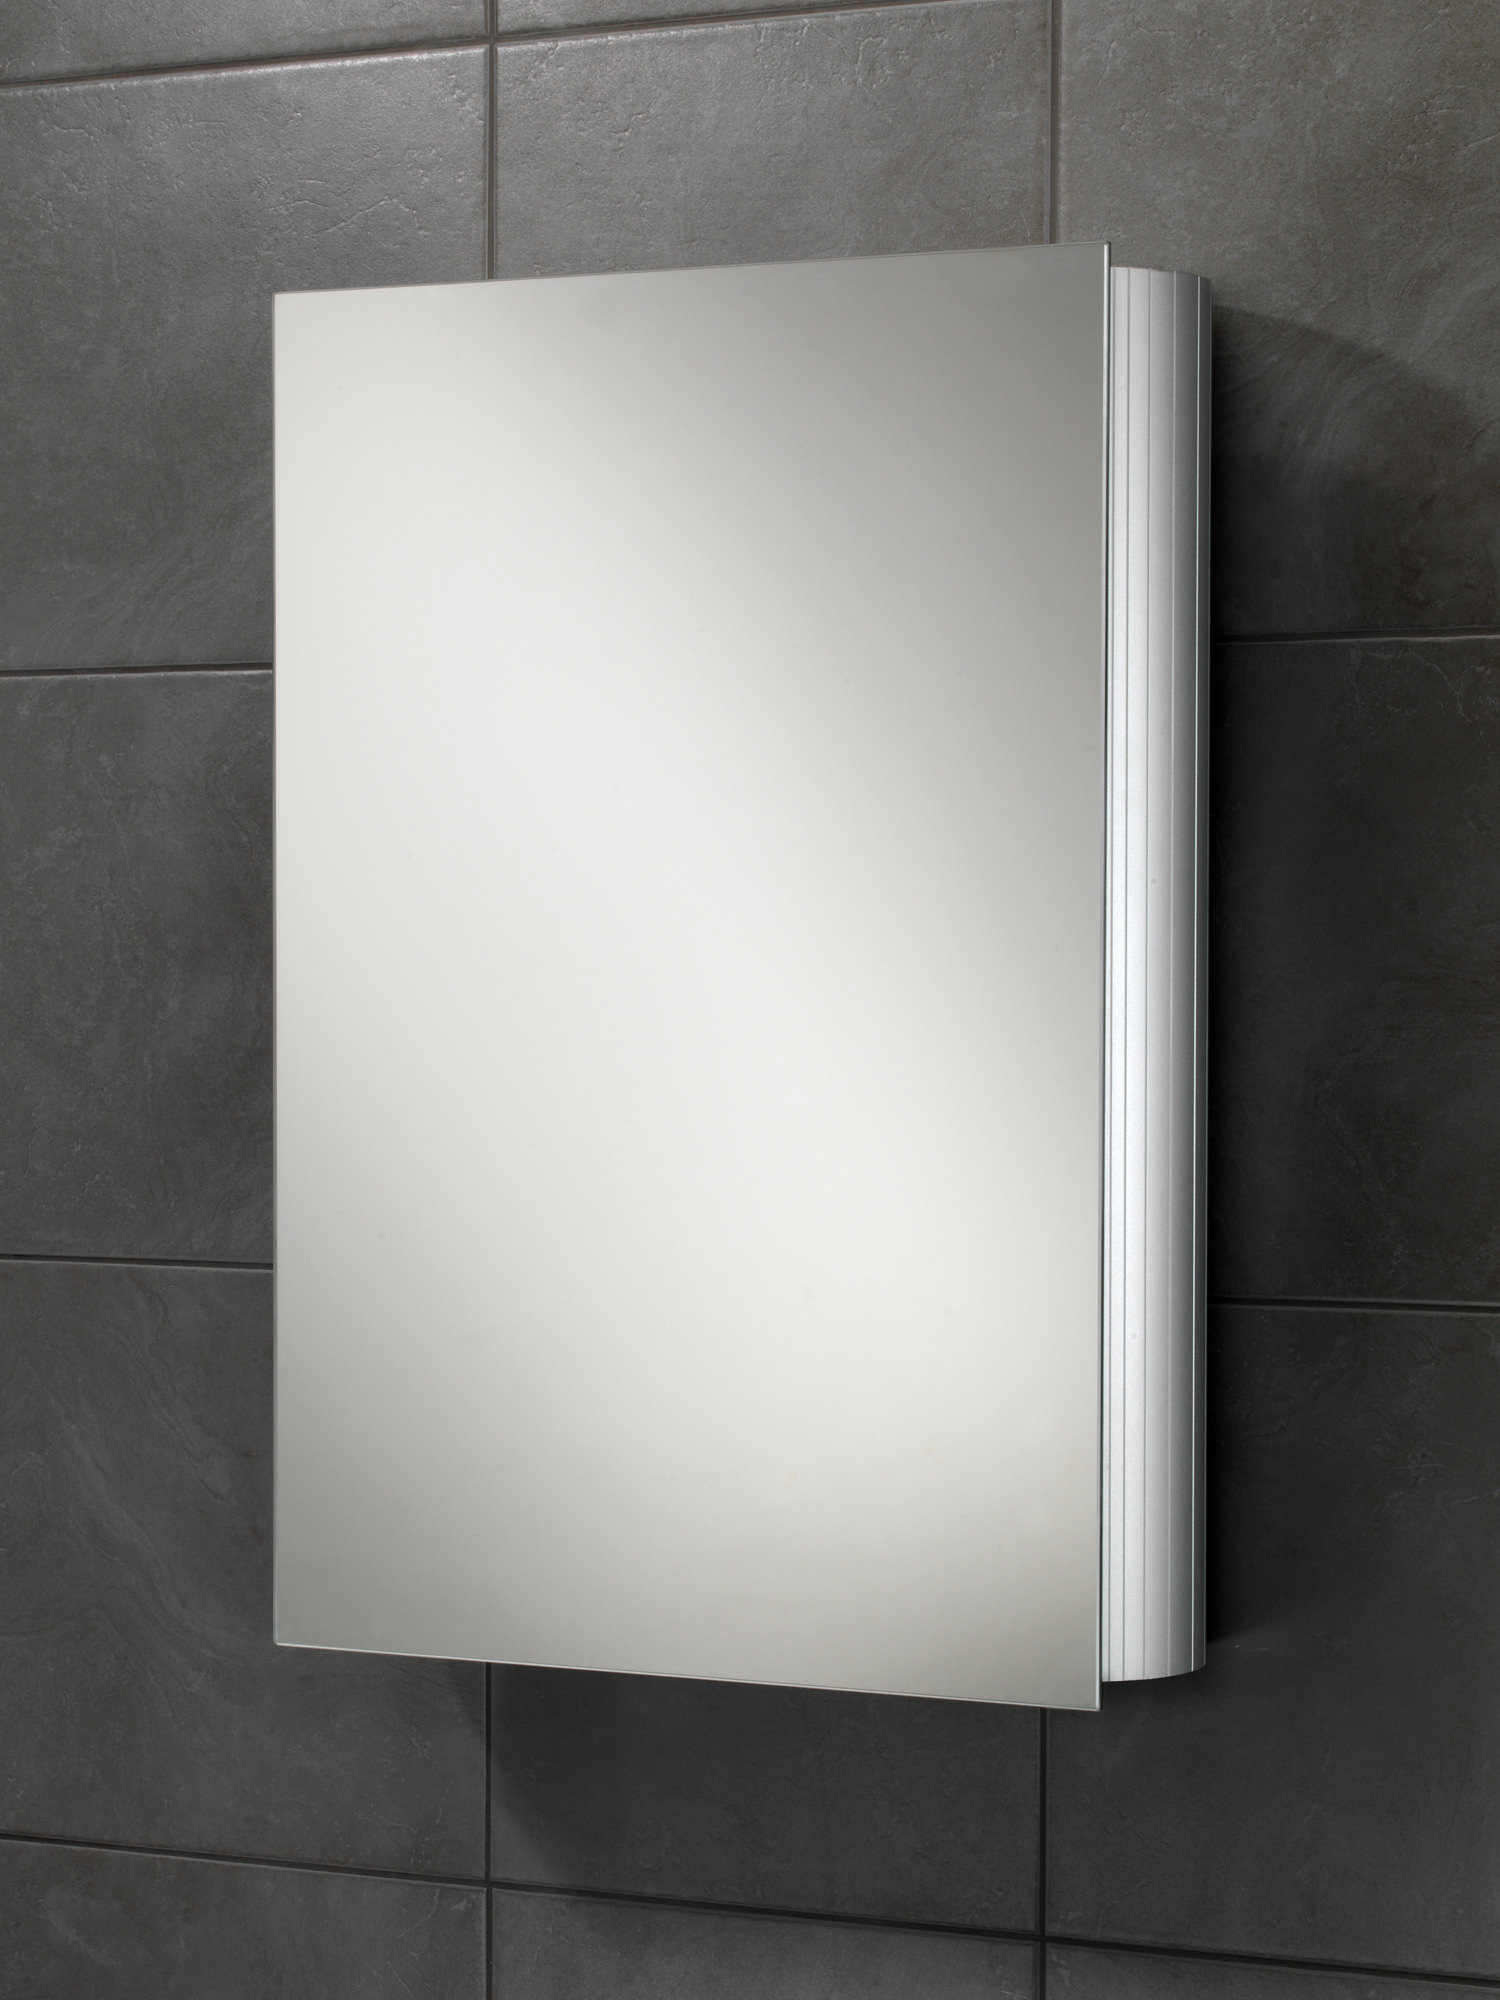 Hib Nitro Single Door Aluminium Mirrored Cabinet X